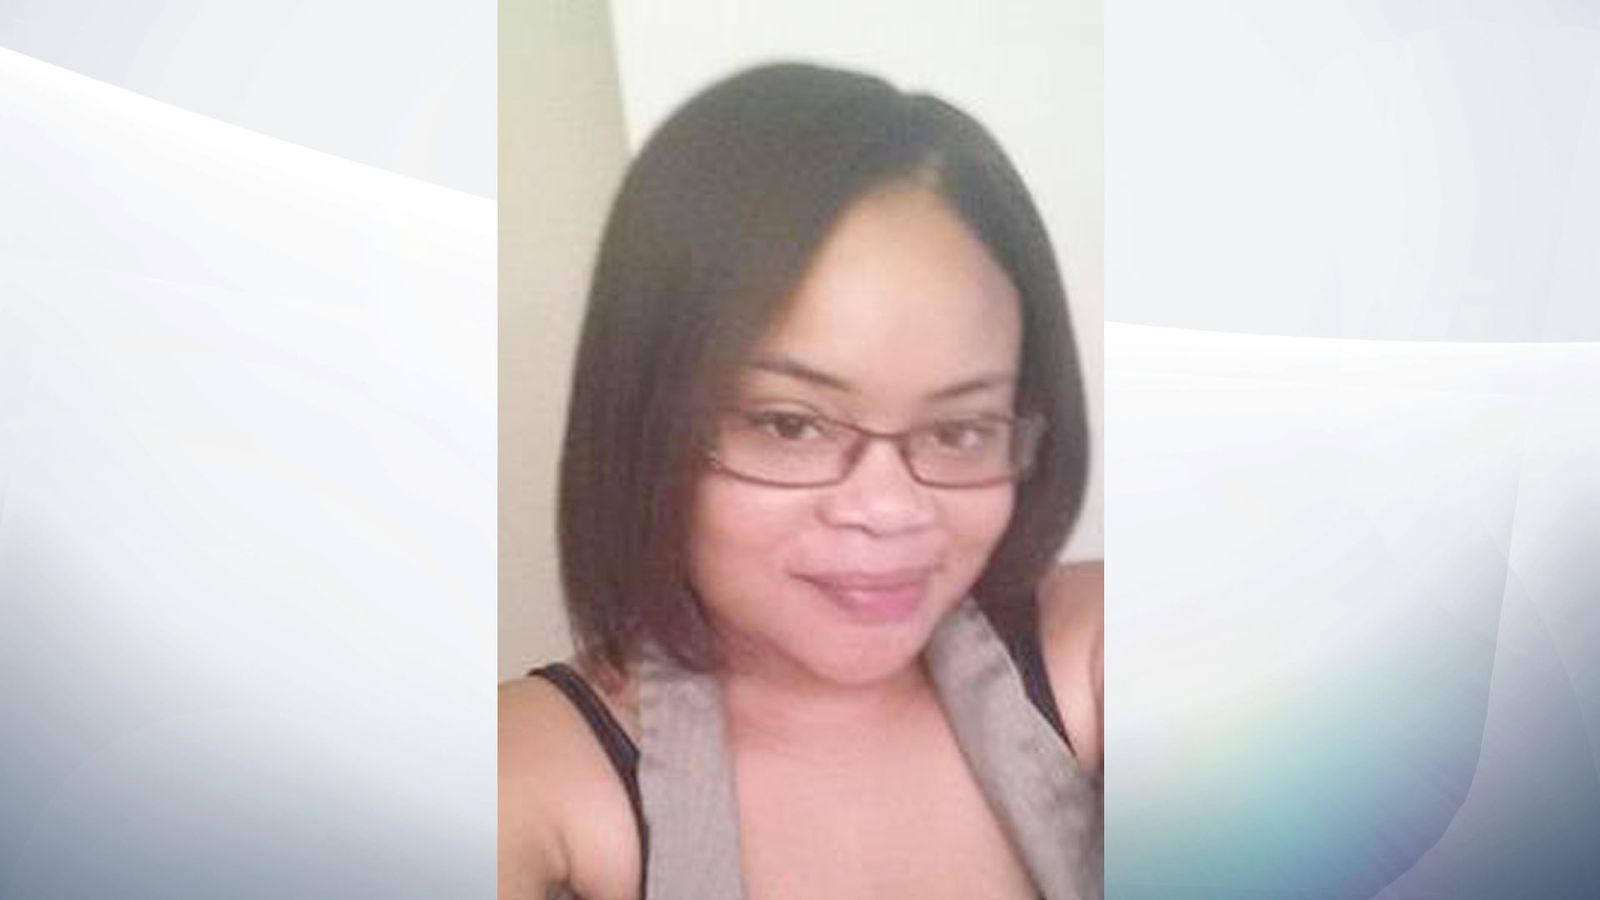 Black woman killed by white officer in her own home